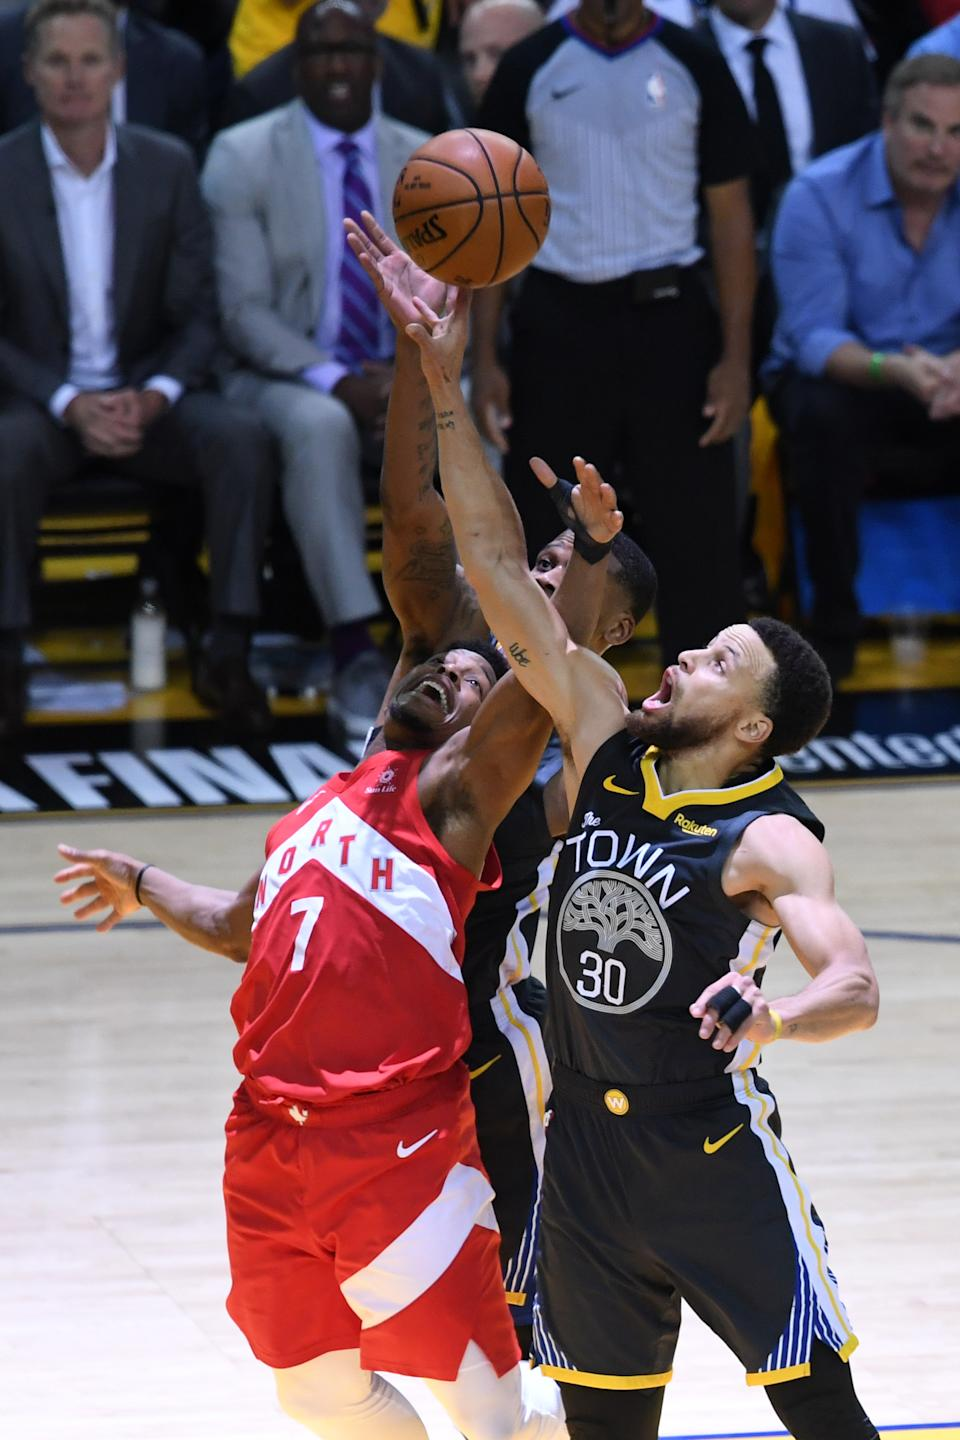 Kyle Lowry #7 of the Toronto Raptors and Stephen Curry #30 of the Golden State Warriors battle for the ball during Game Four of the 2019 NBA Finals at ORACLE Arena on June 07, 2019 in Oakland, California. (Photo by Thearon W. Henderson/Getty Images)